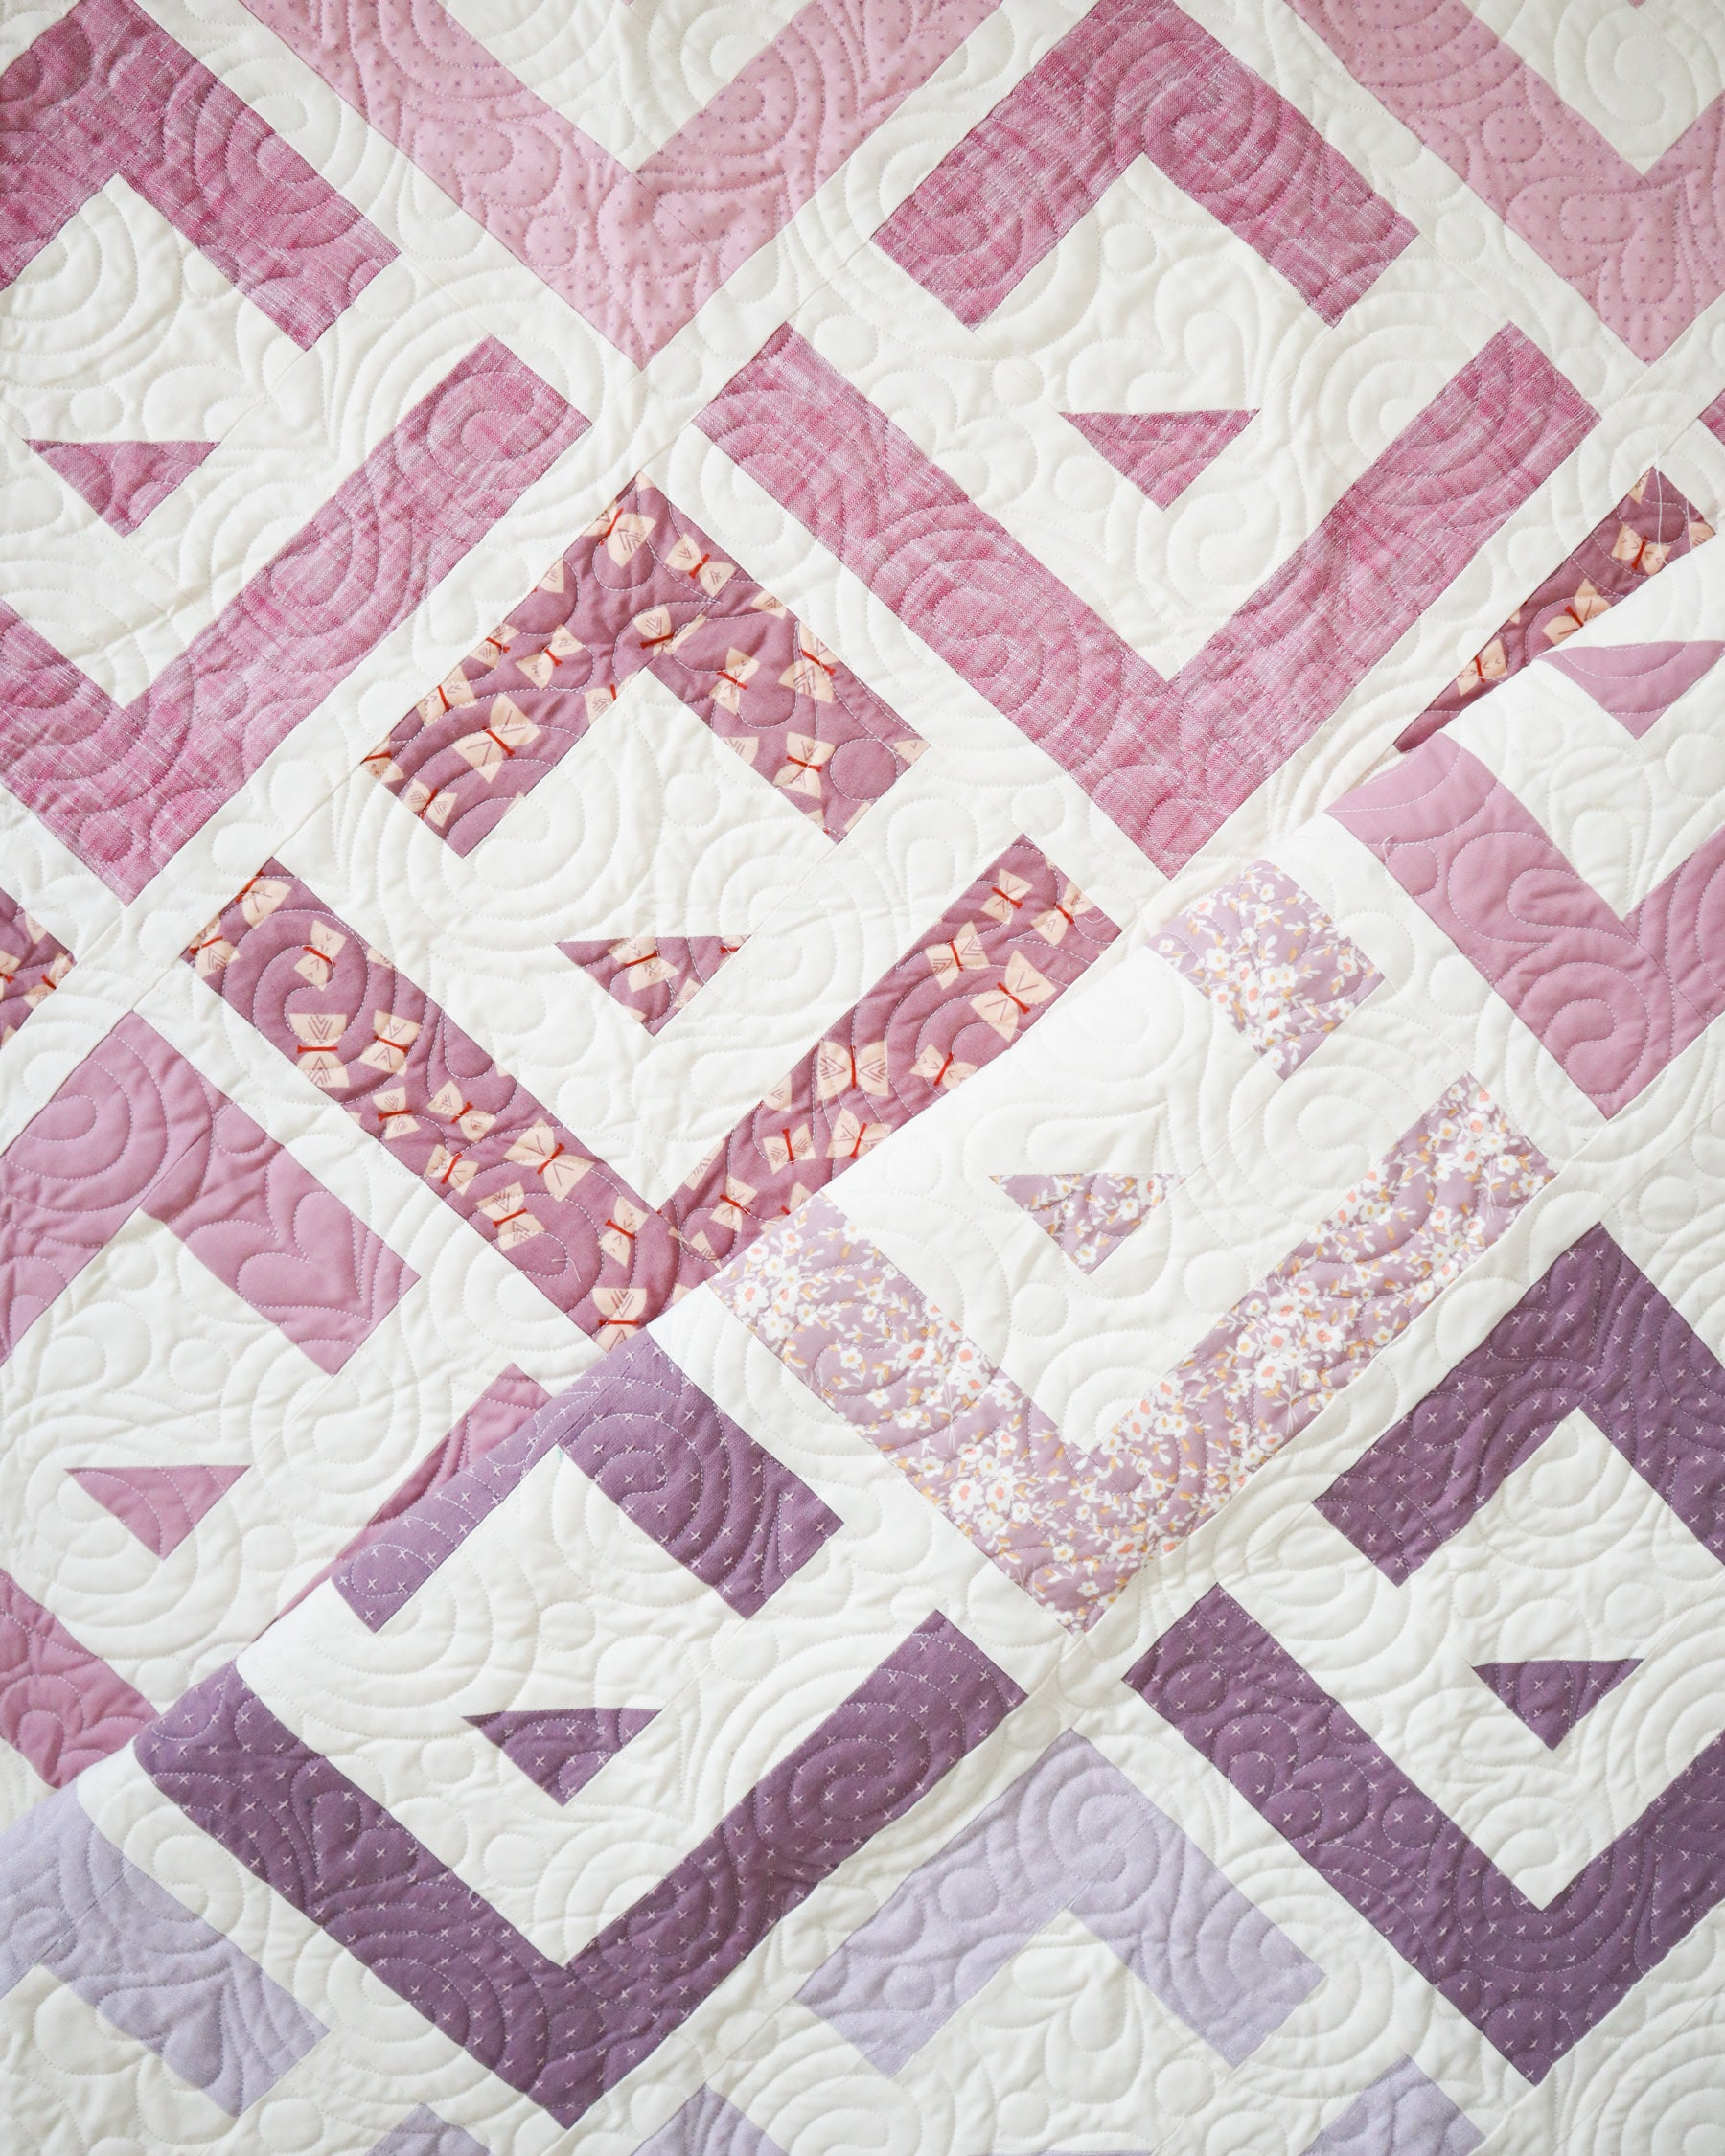 Cabin Valley Quilt - the purple one.